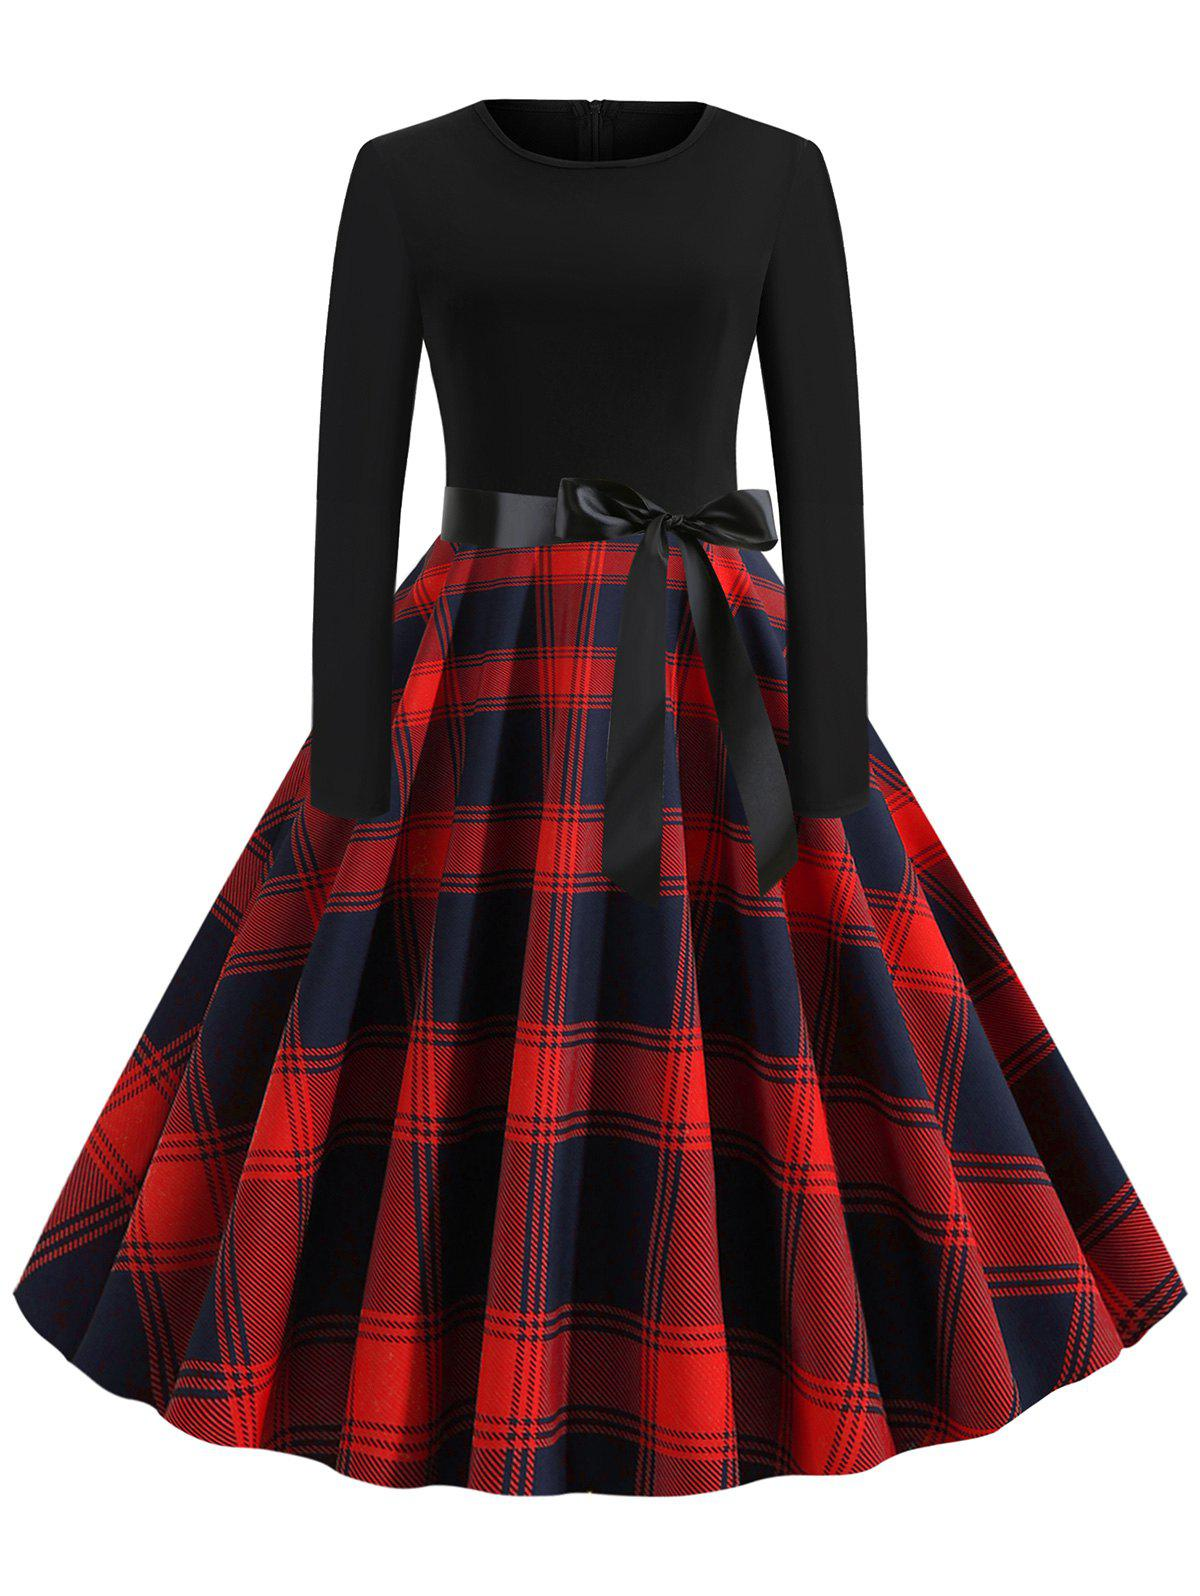 Shop Plaid Belted Vintage Flare Dress